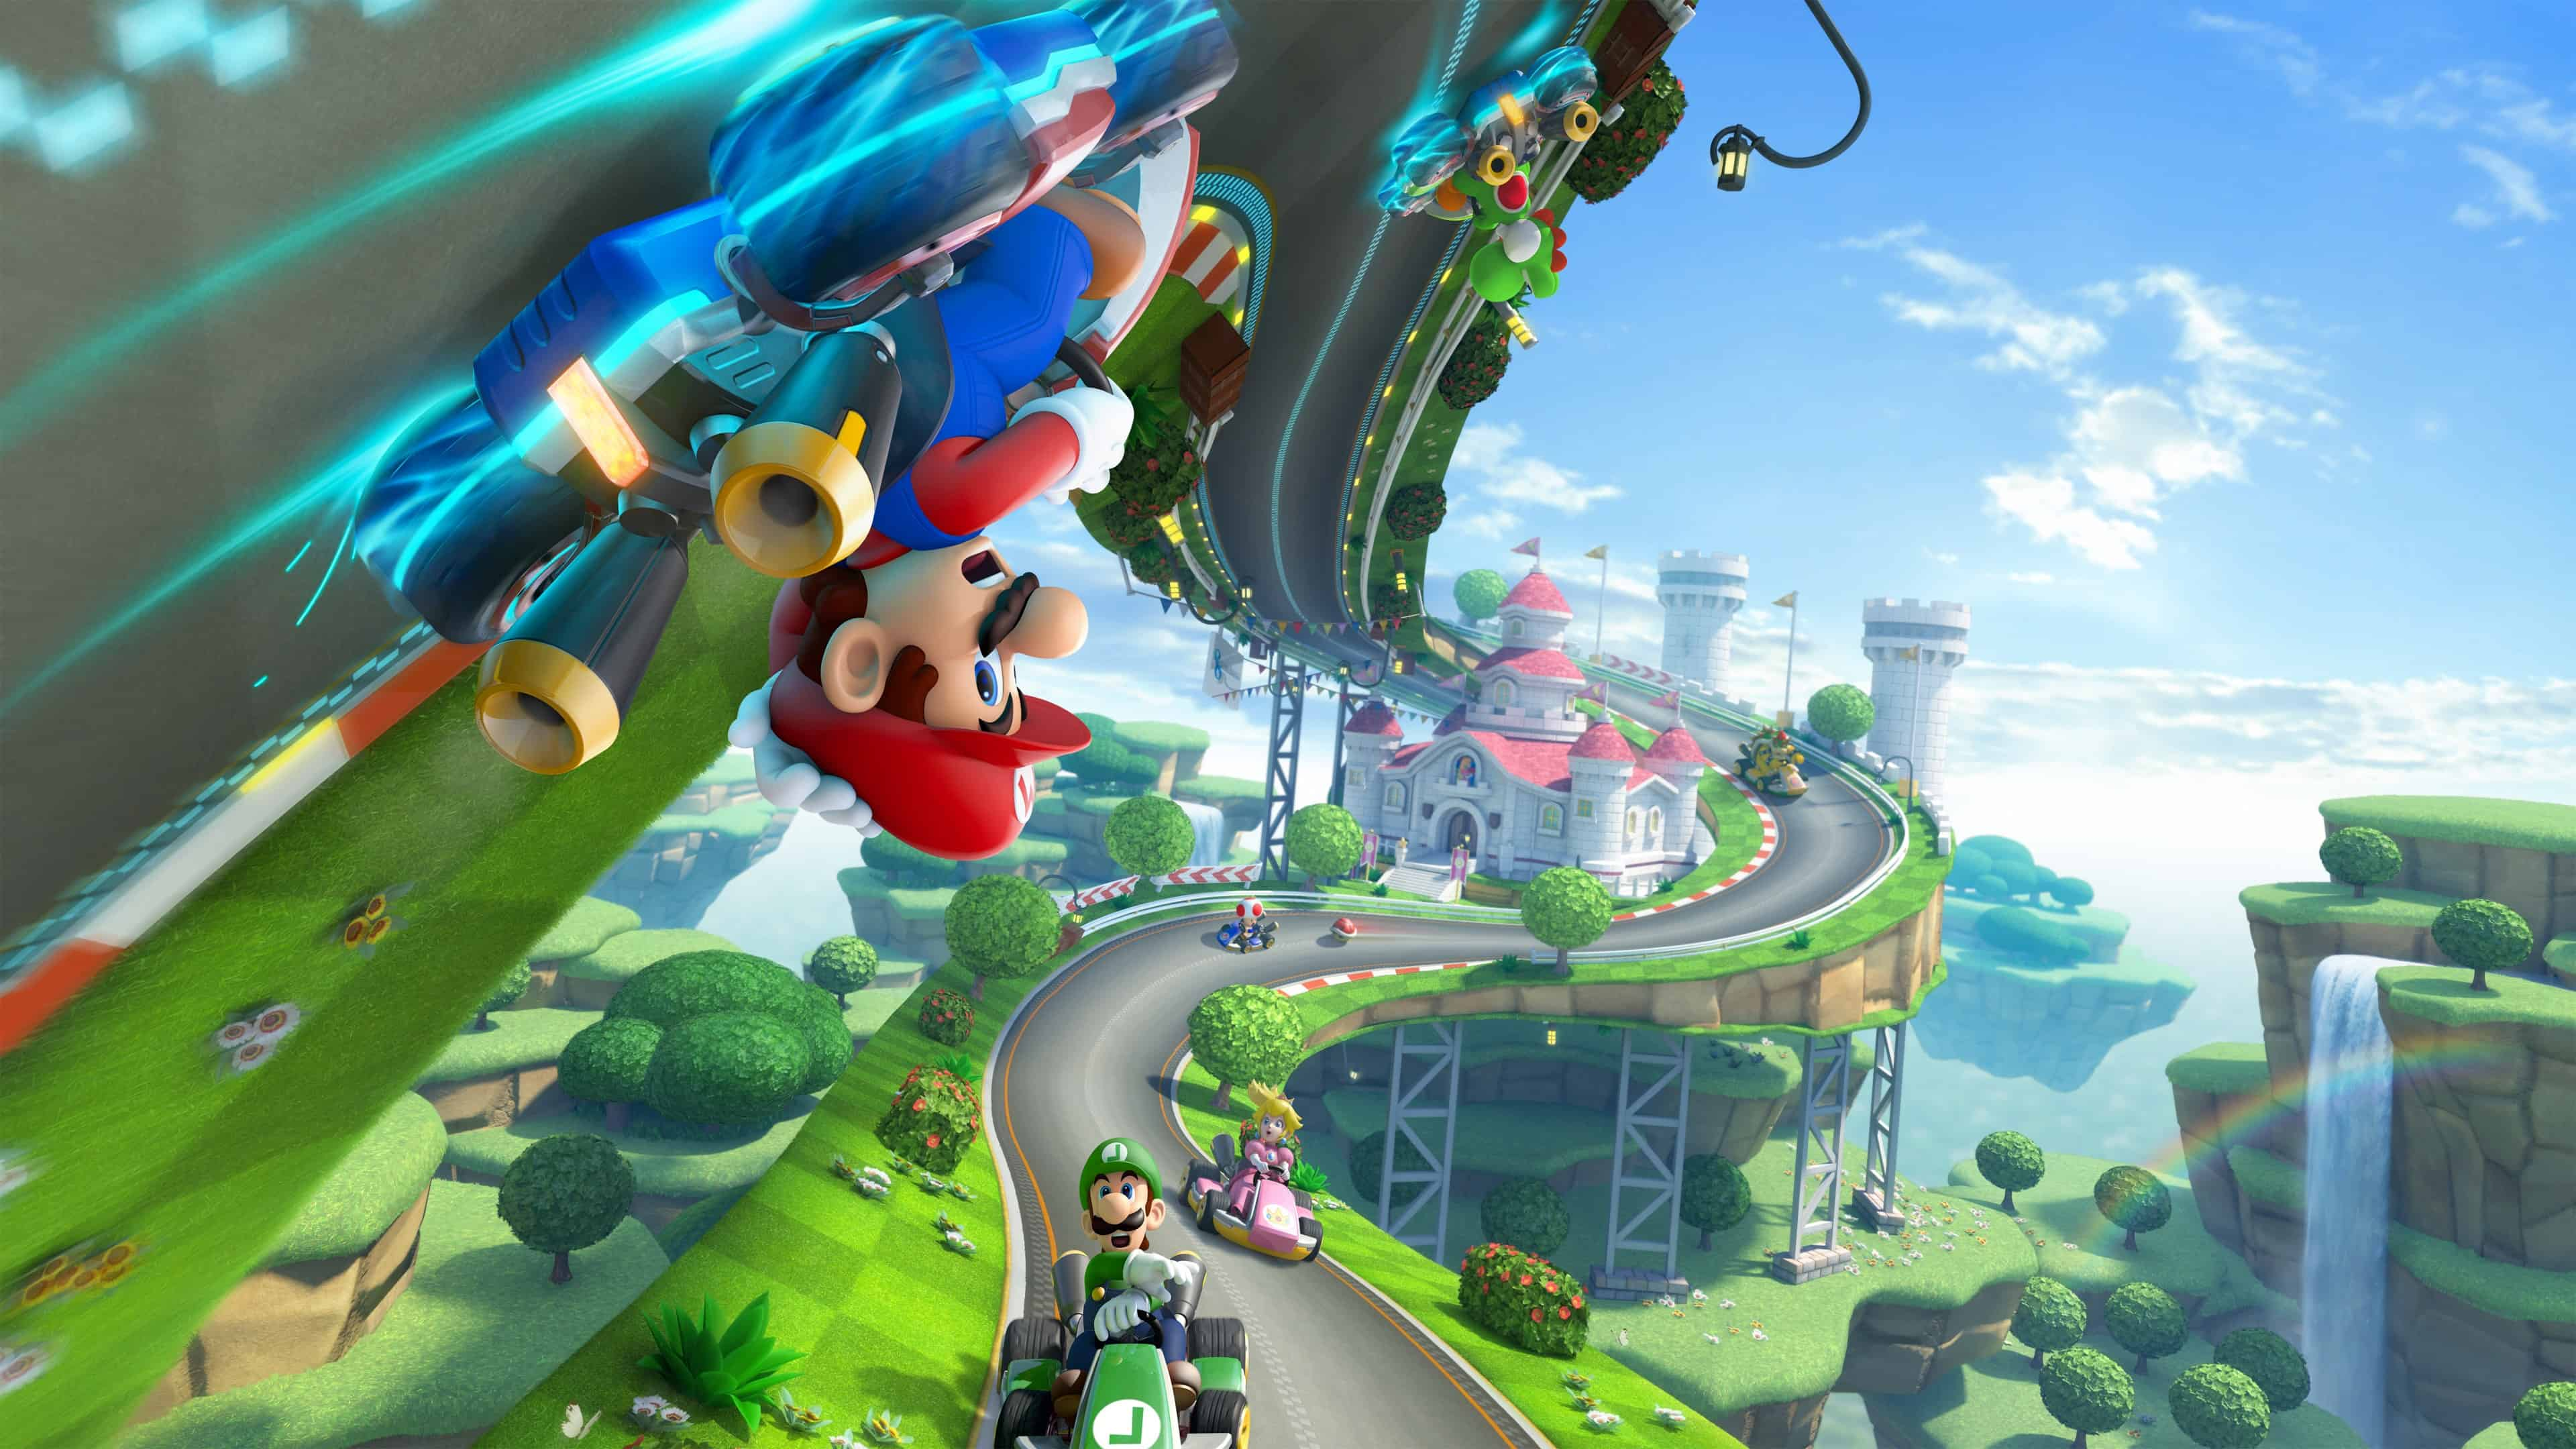 Mario Kart Wallpapers Top Free Mario Kart Backgrounds